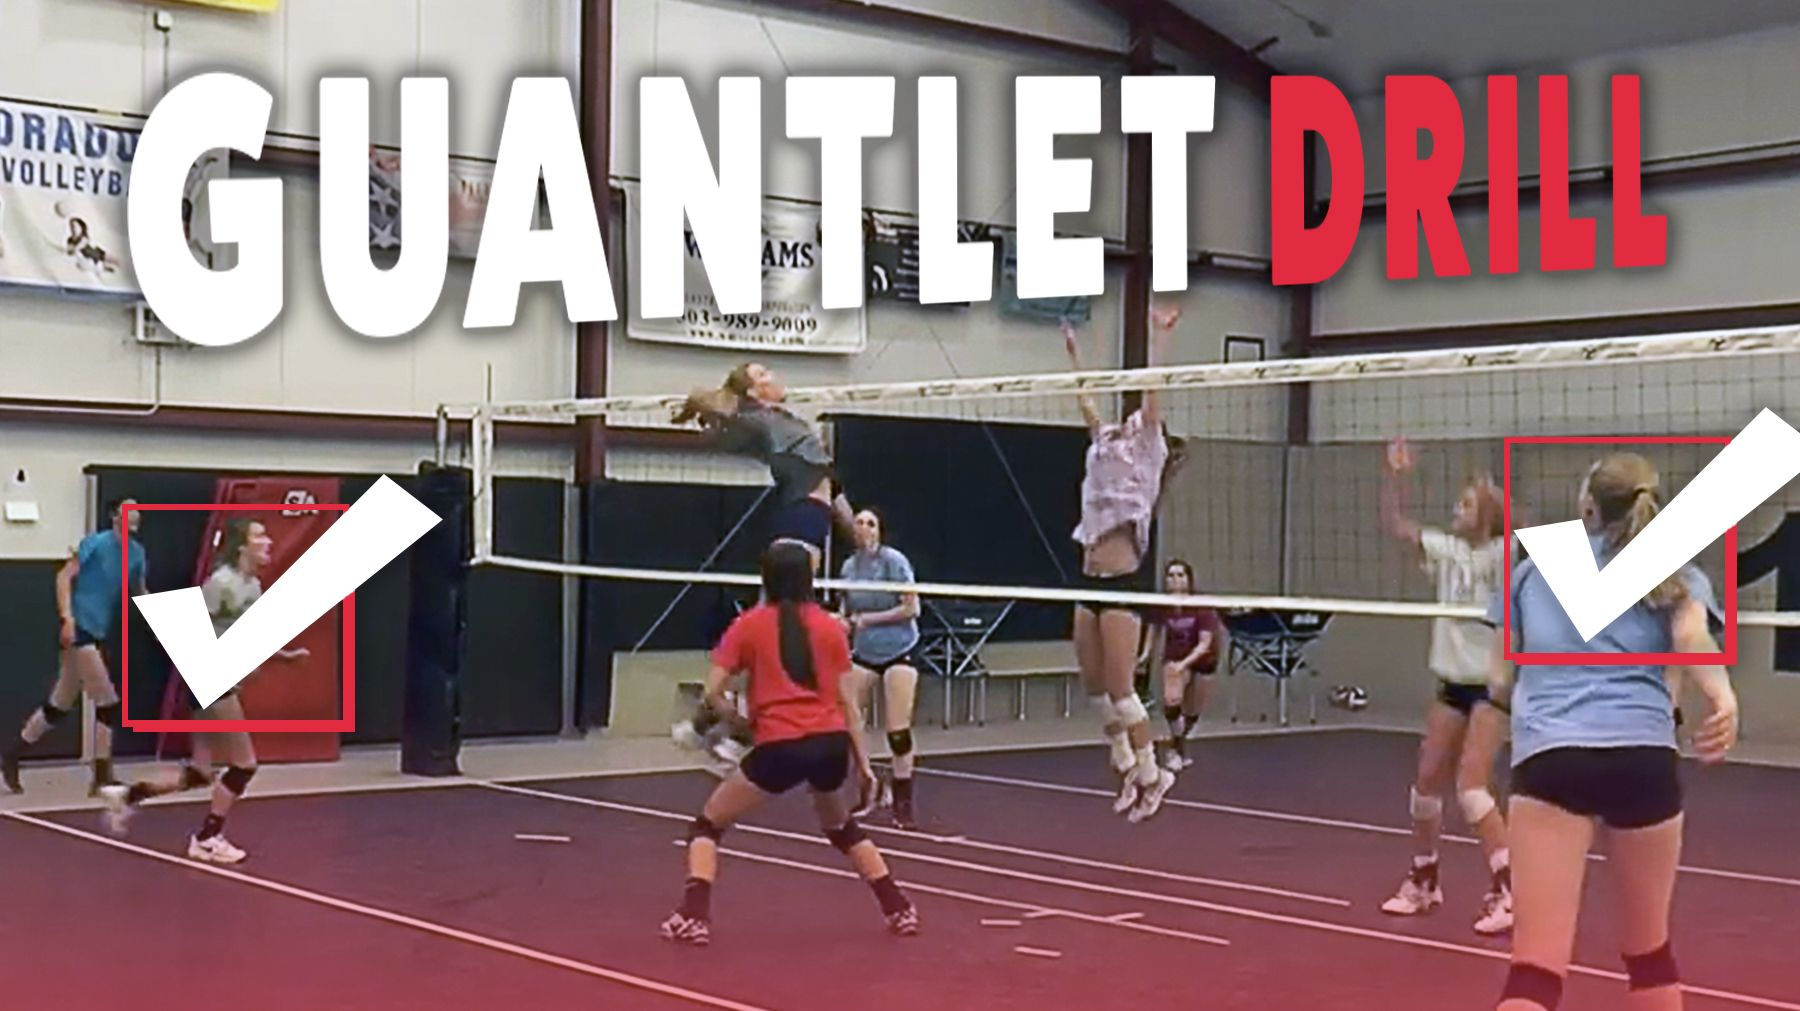 Gauntlet Drill For Setters The Art Of Coaching Volleyball Coaching Volleyball Volleyball Training Volleyball Drills